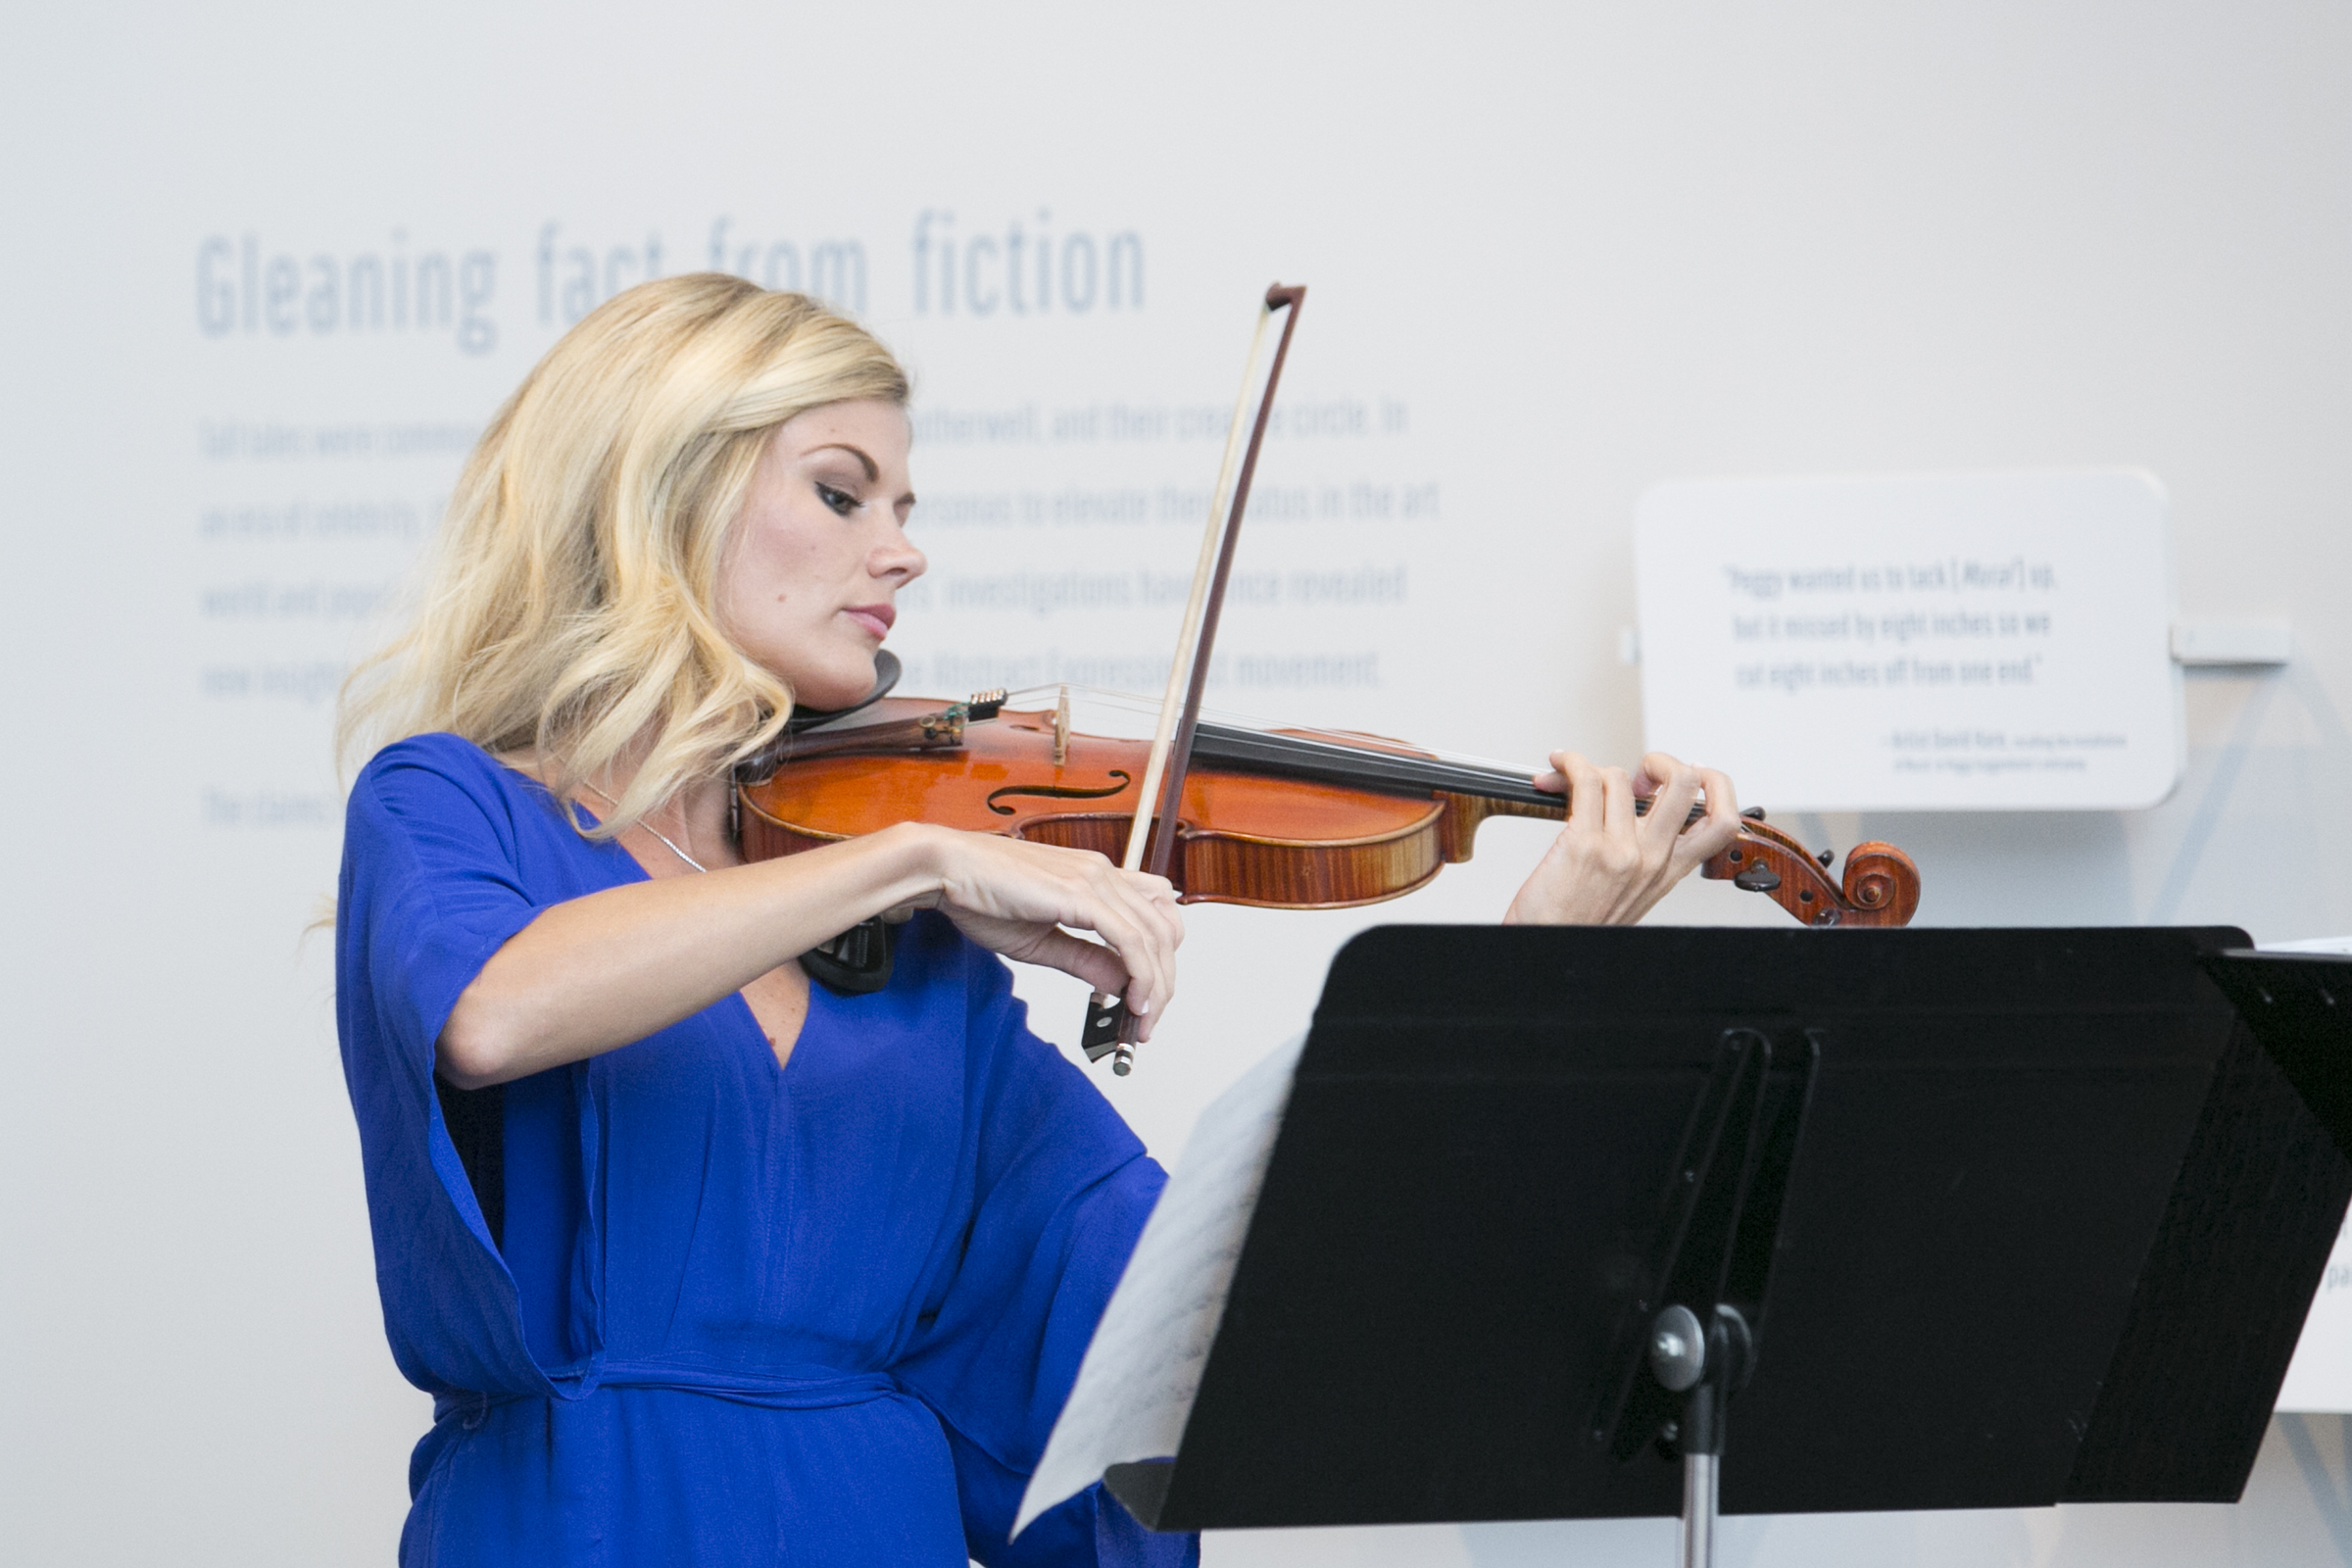 """On August 10, 2017, Sherèe Lutz of the Contemporary Art Department performed with Uptown Violins to highlight the musical connections to Abstract Expressionist legends Jackson Pollock and Robert Motherwell  in the exhibition, """"Pollock and Motherwell: Legends of Abstract Expressionism,"""" on view in Gallery L8 at the Nelson-Atkins Museum of Art, Kansas City, MO. The exhibition is on view from July 8 through October 29, 2017. Photographer / Ashley Elwell"""